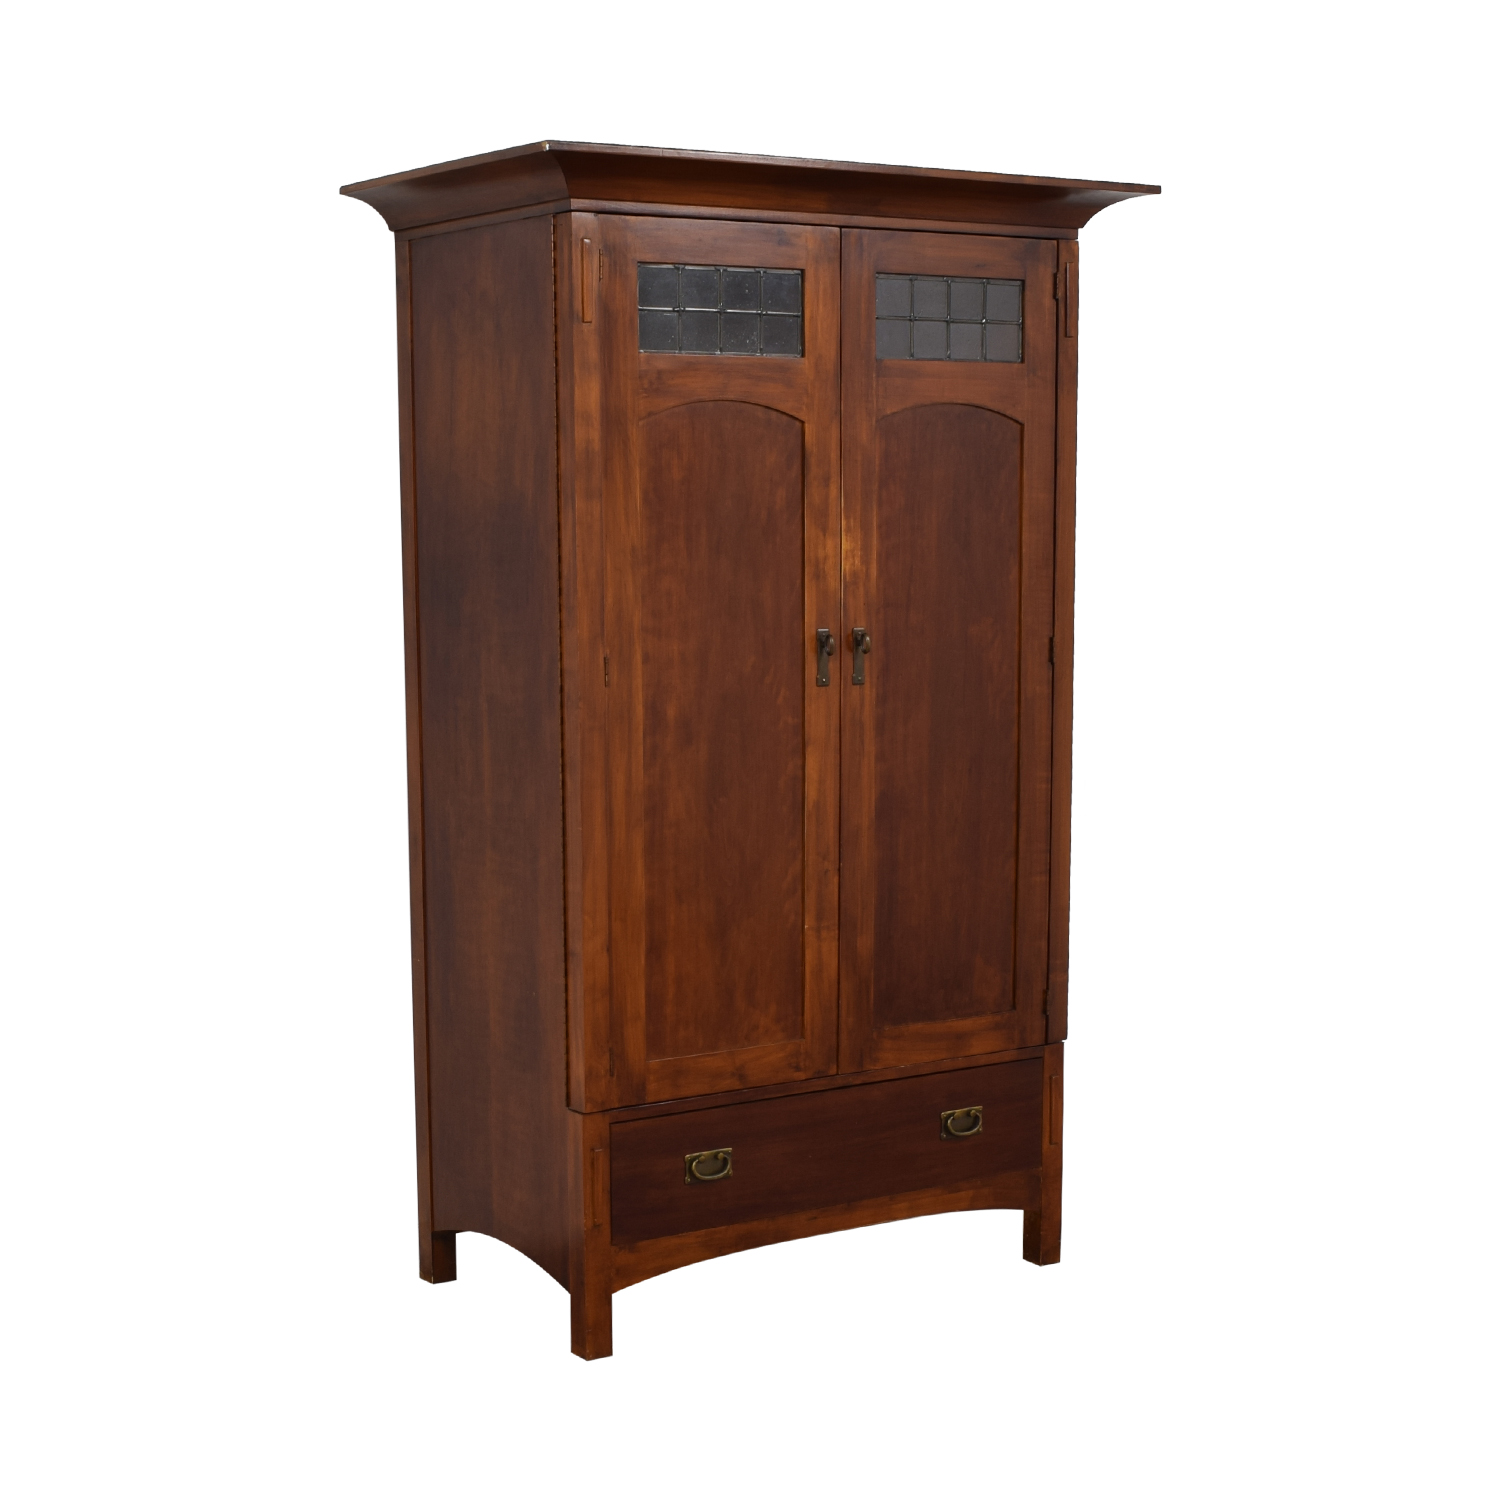 Romweber Romweber Wood Single-Drawer Entertainment Armoire second hand